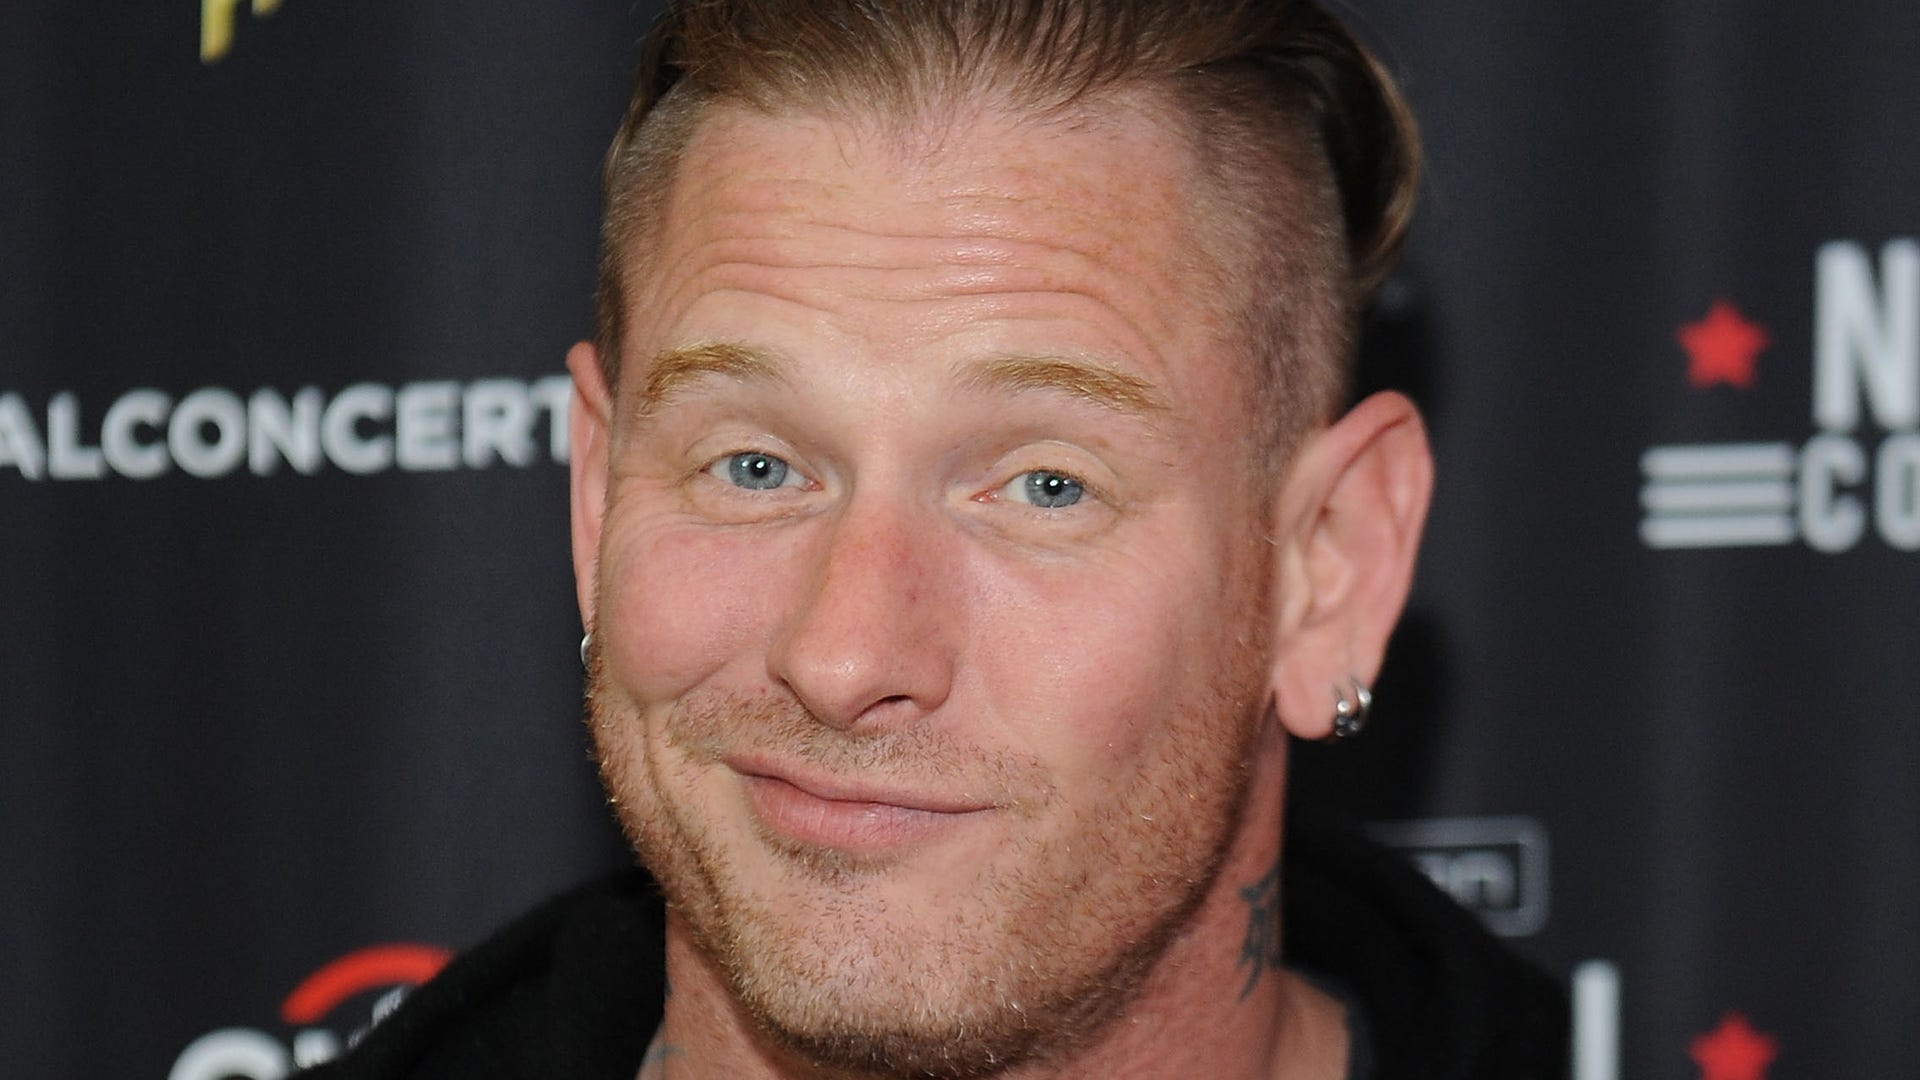 Slipknot's Corey Taylor says you're a 'f***ing a**hole' if you go to a concertunvaccinated